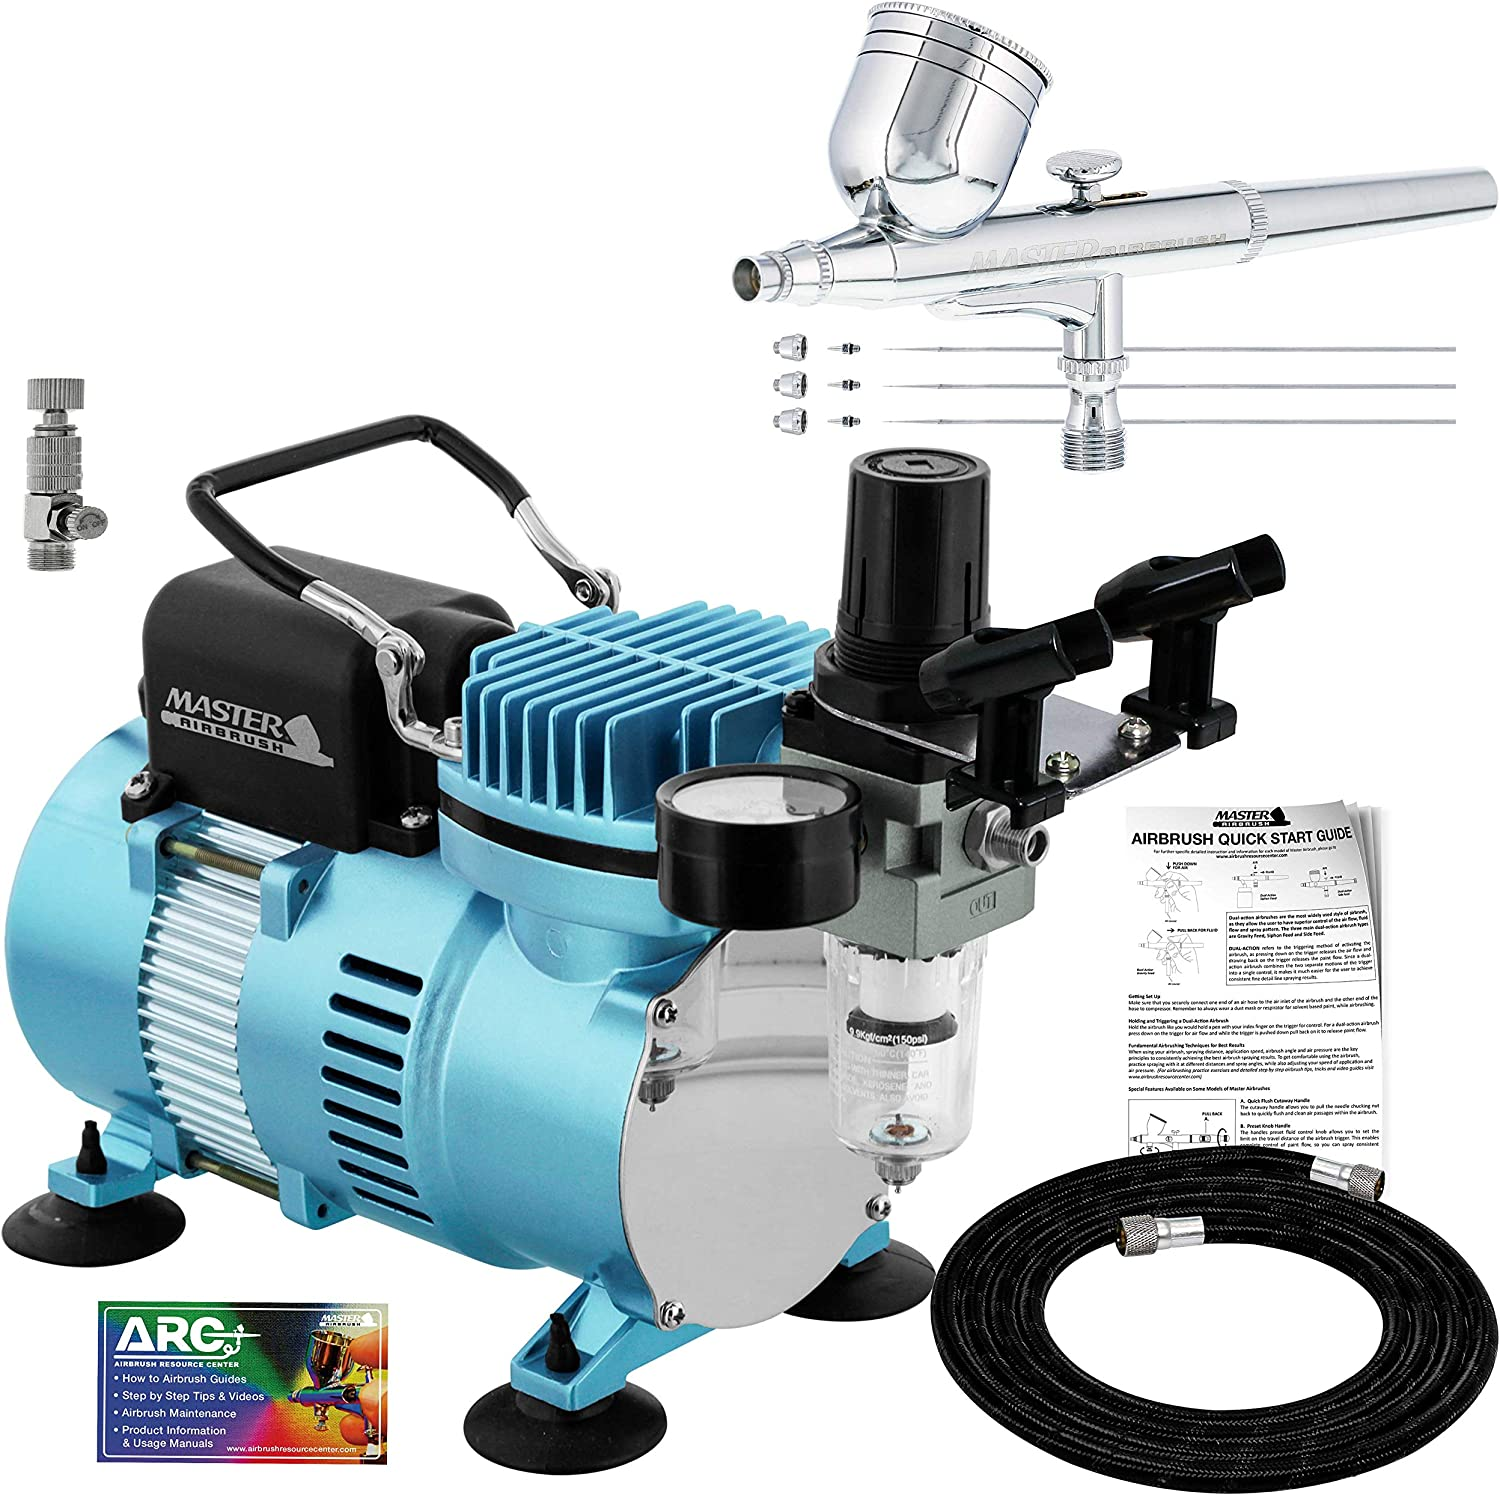 Master Airbrush Cool Runner II Dual Fan Air Compressor System Kit with a Pro Set G222 Gravity Airbrush Kit with 3 Tips 0.2, 0.3 & 0.5 mm - Hose, Holder, How-to Guide - Hobby, Auto, Cake, Tattoo, Art